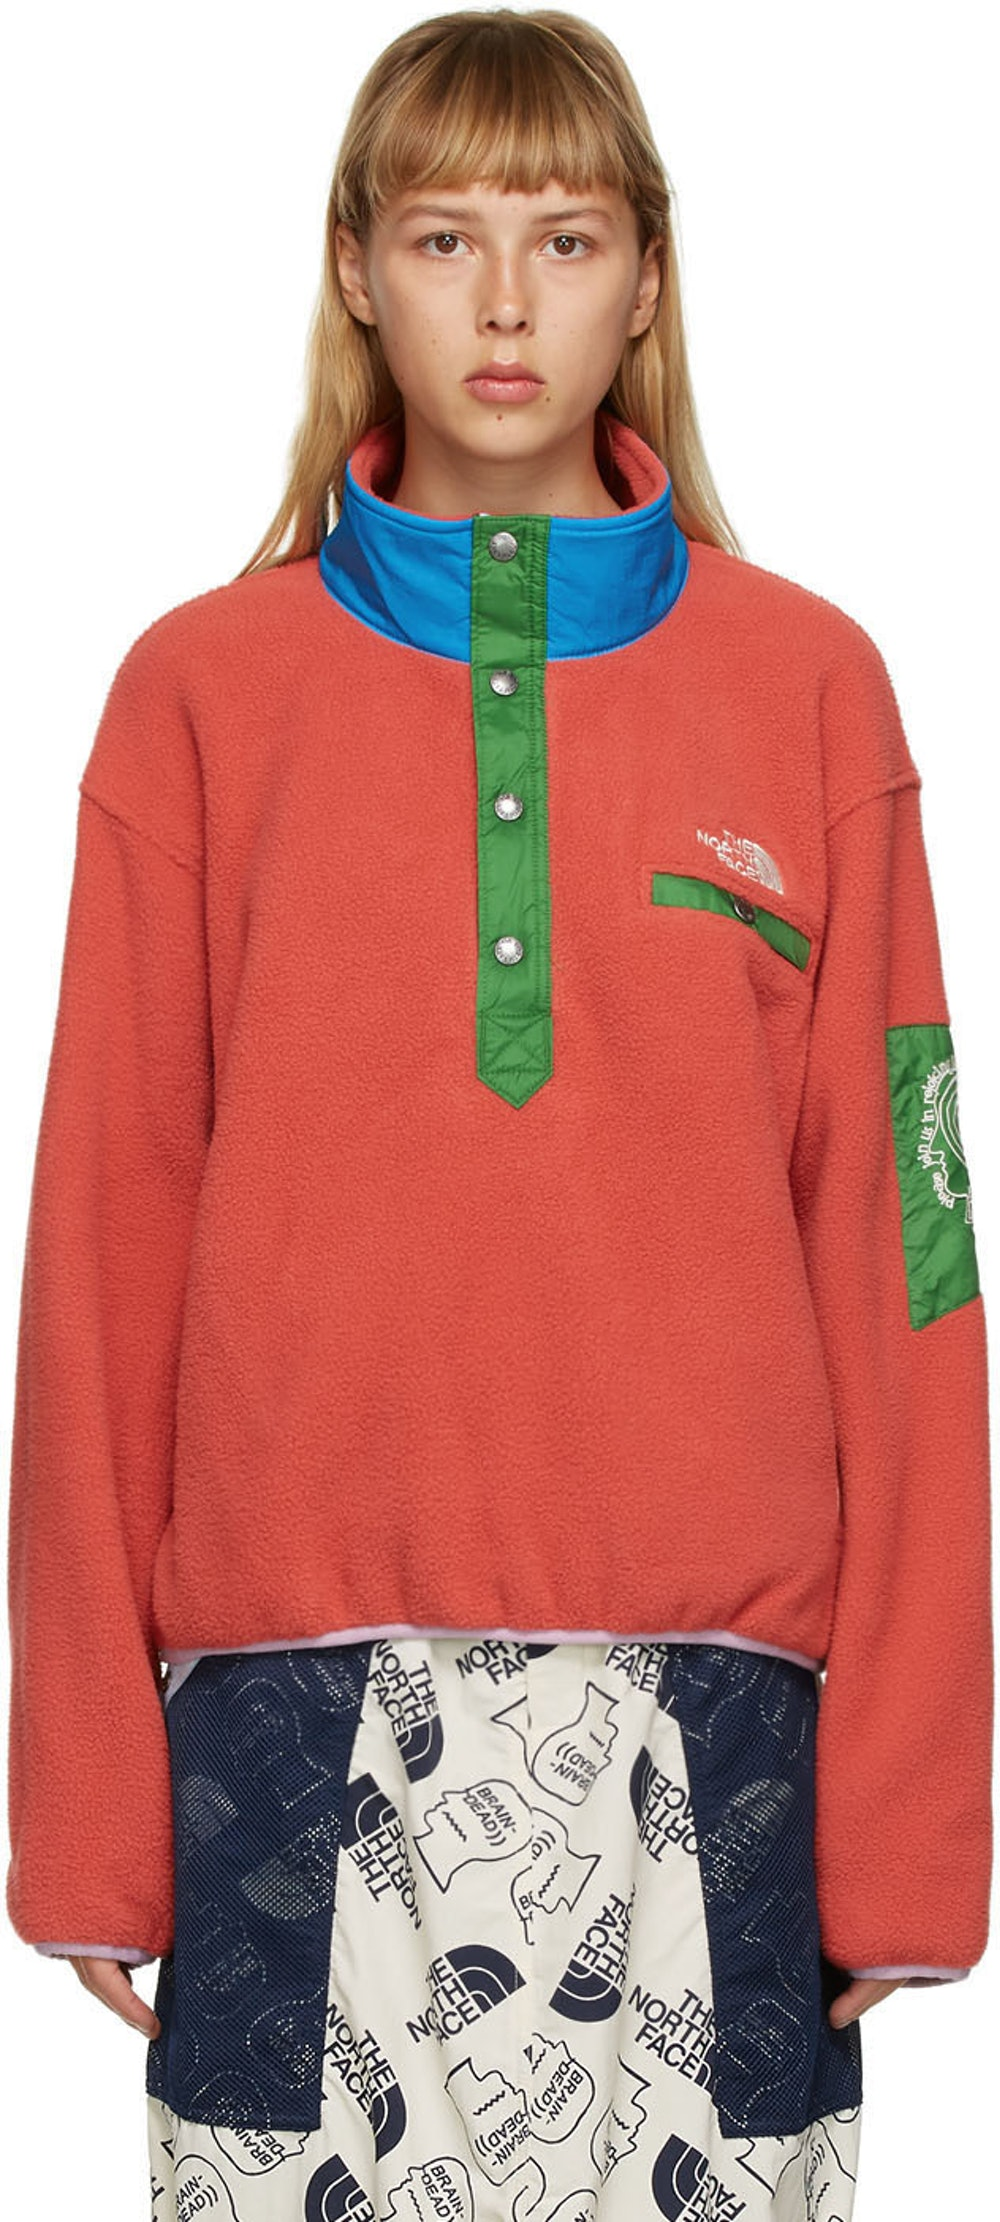 Red The North Face Edition Fleece Pullover Sweatshirt